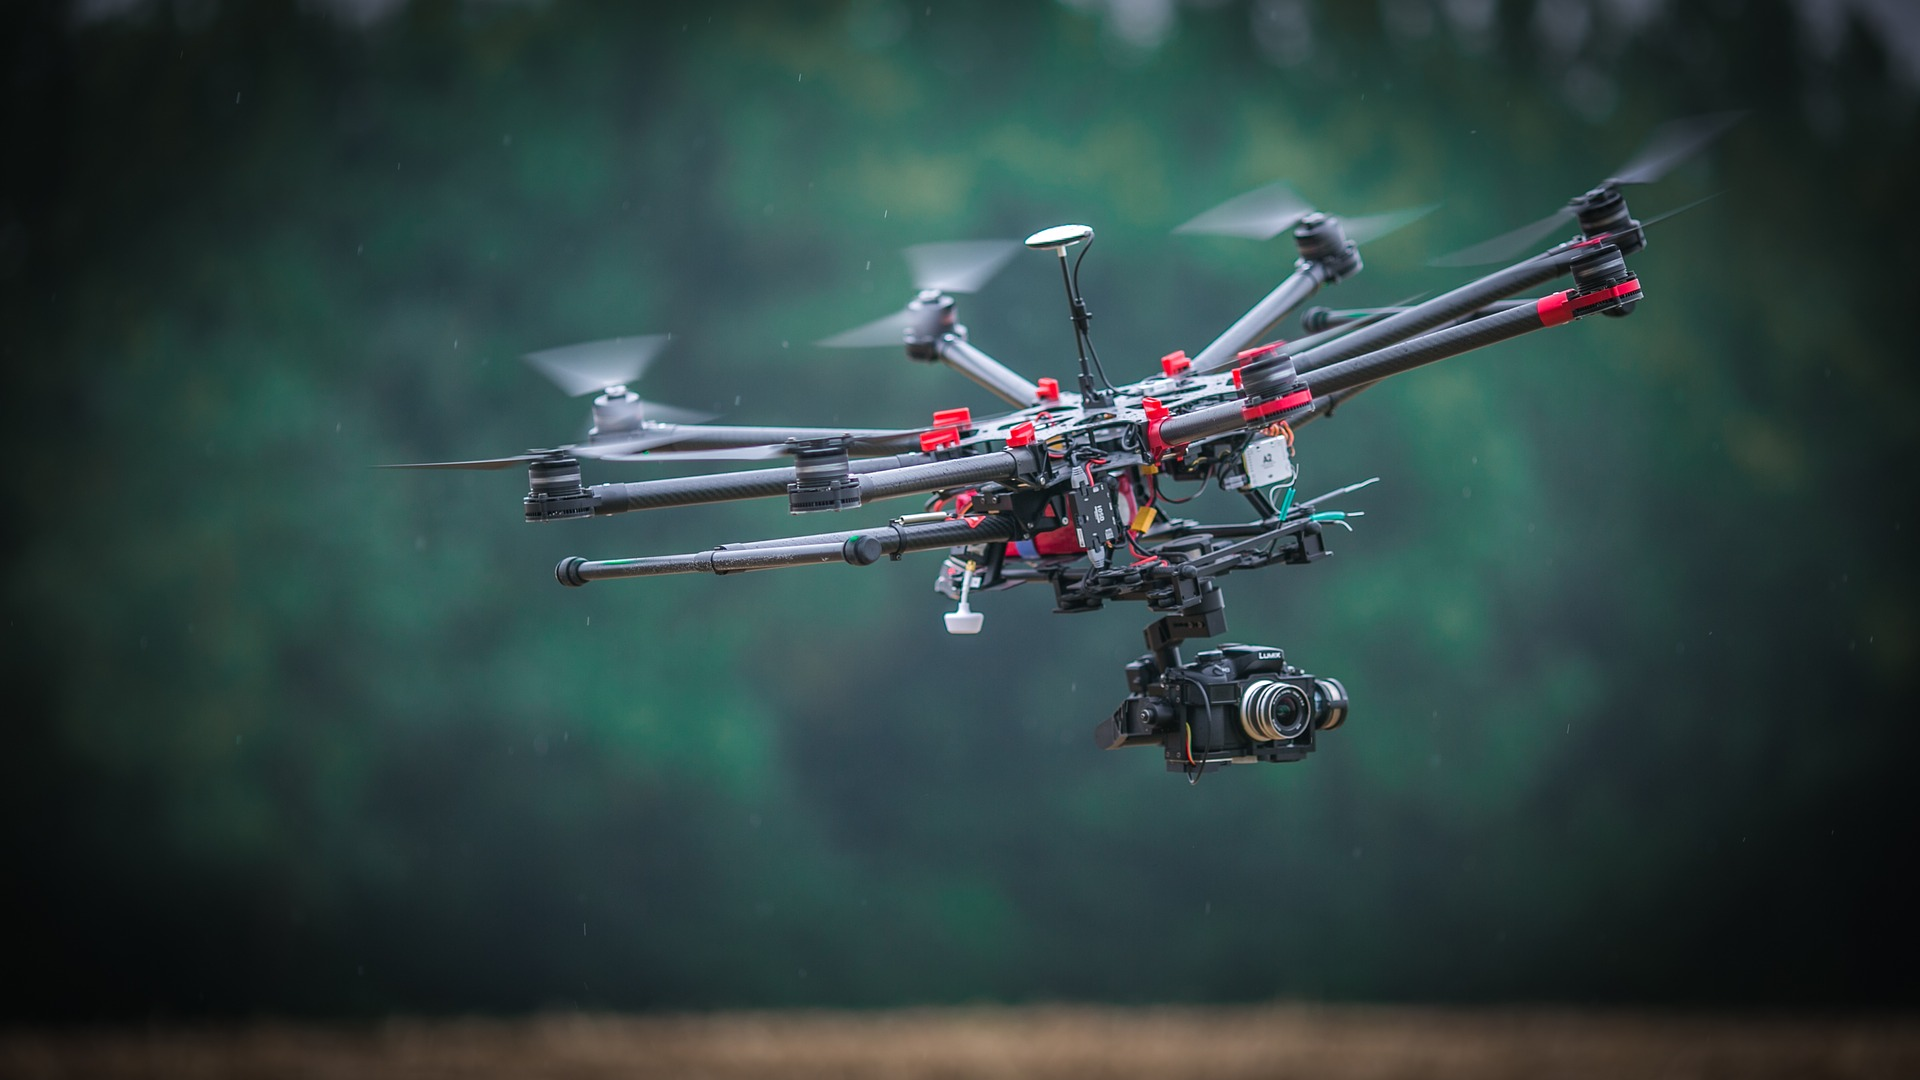 Drones are part of the UAV (Unmanned Aerial Vehicles), which means that they have no pilot and can be controlled either remotely or autonomously